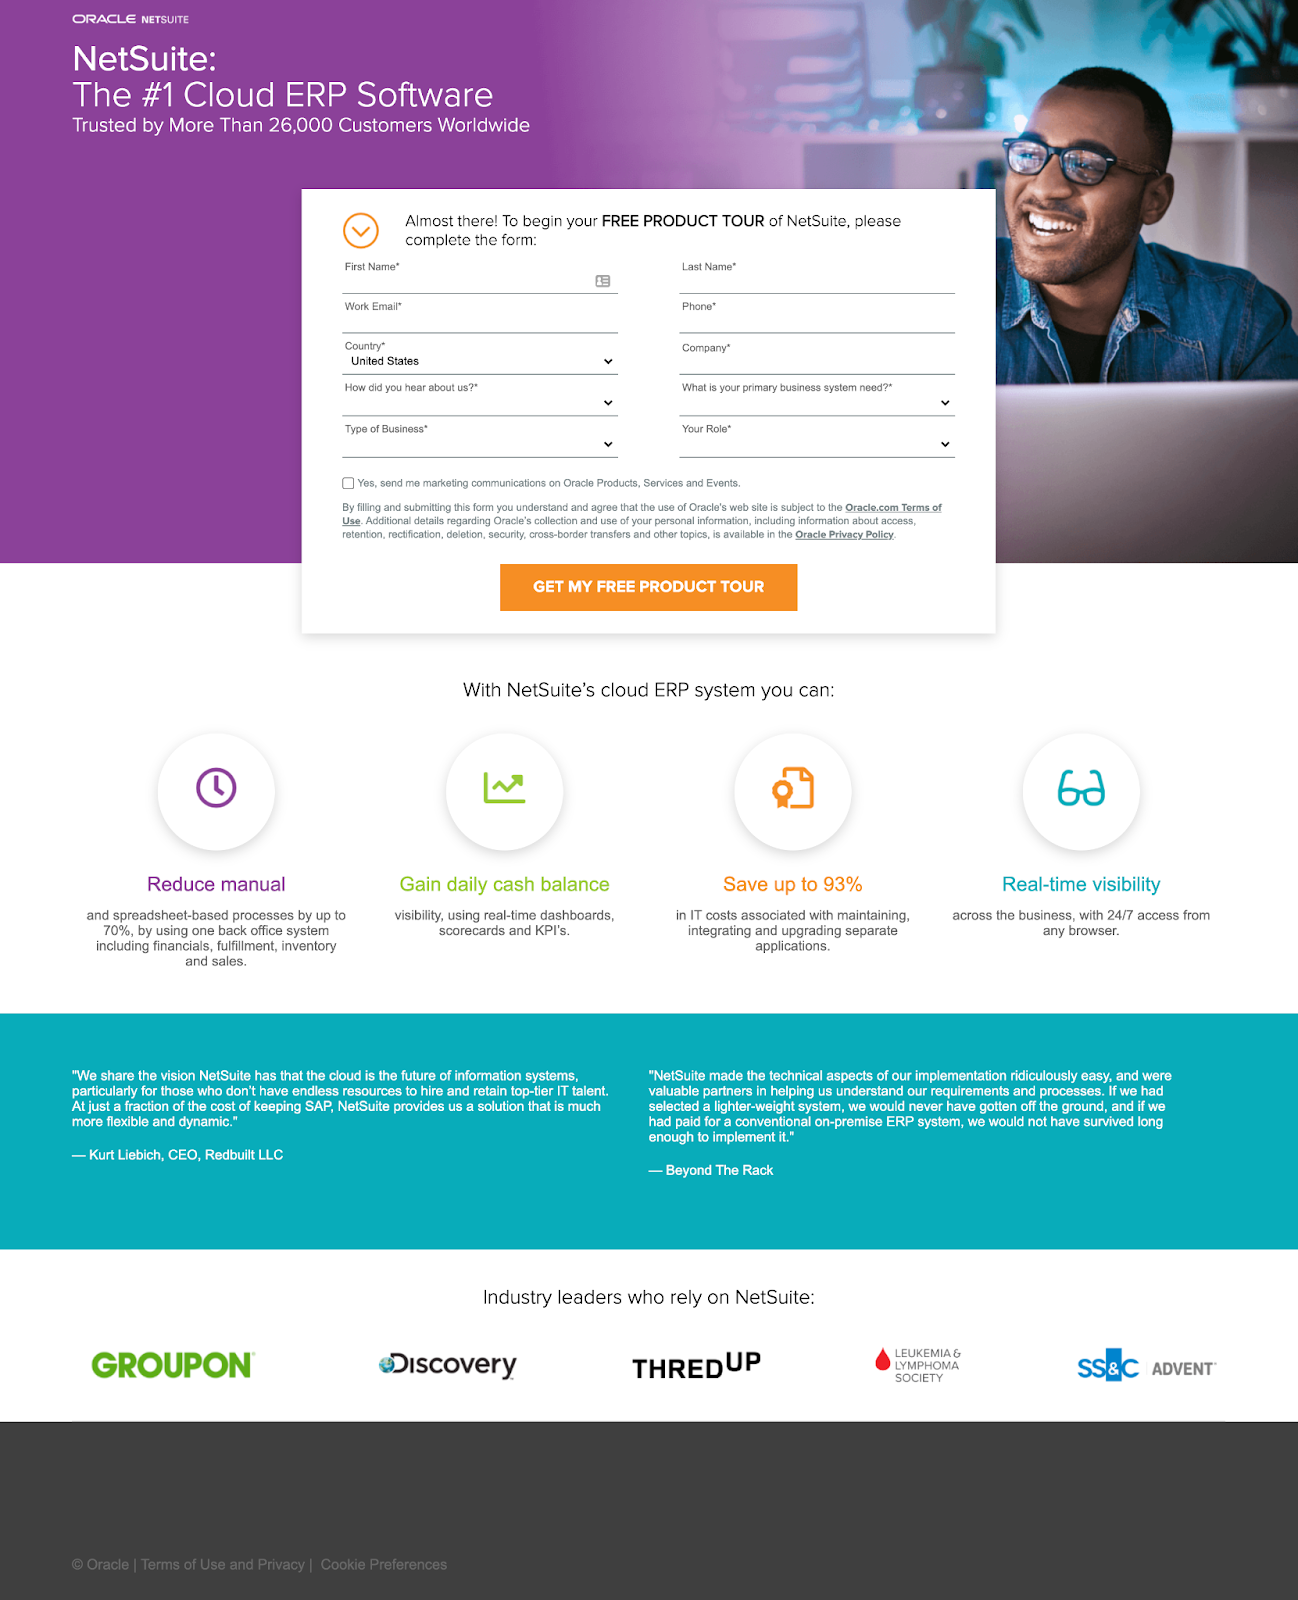 B2B landing pages - netsuite's landing page